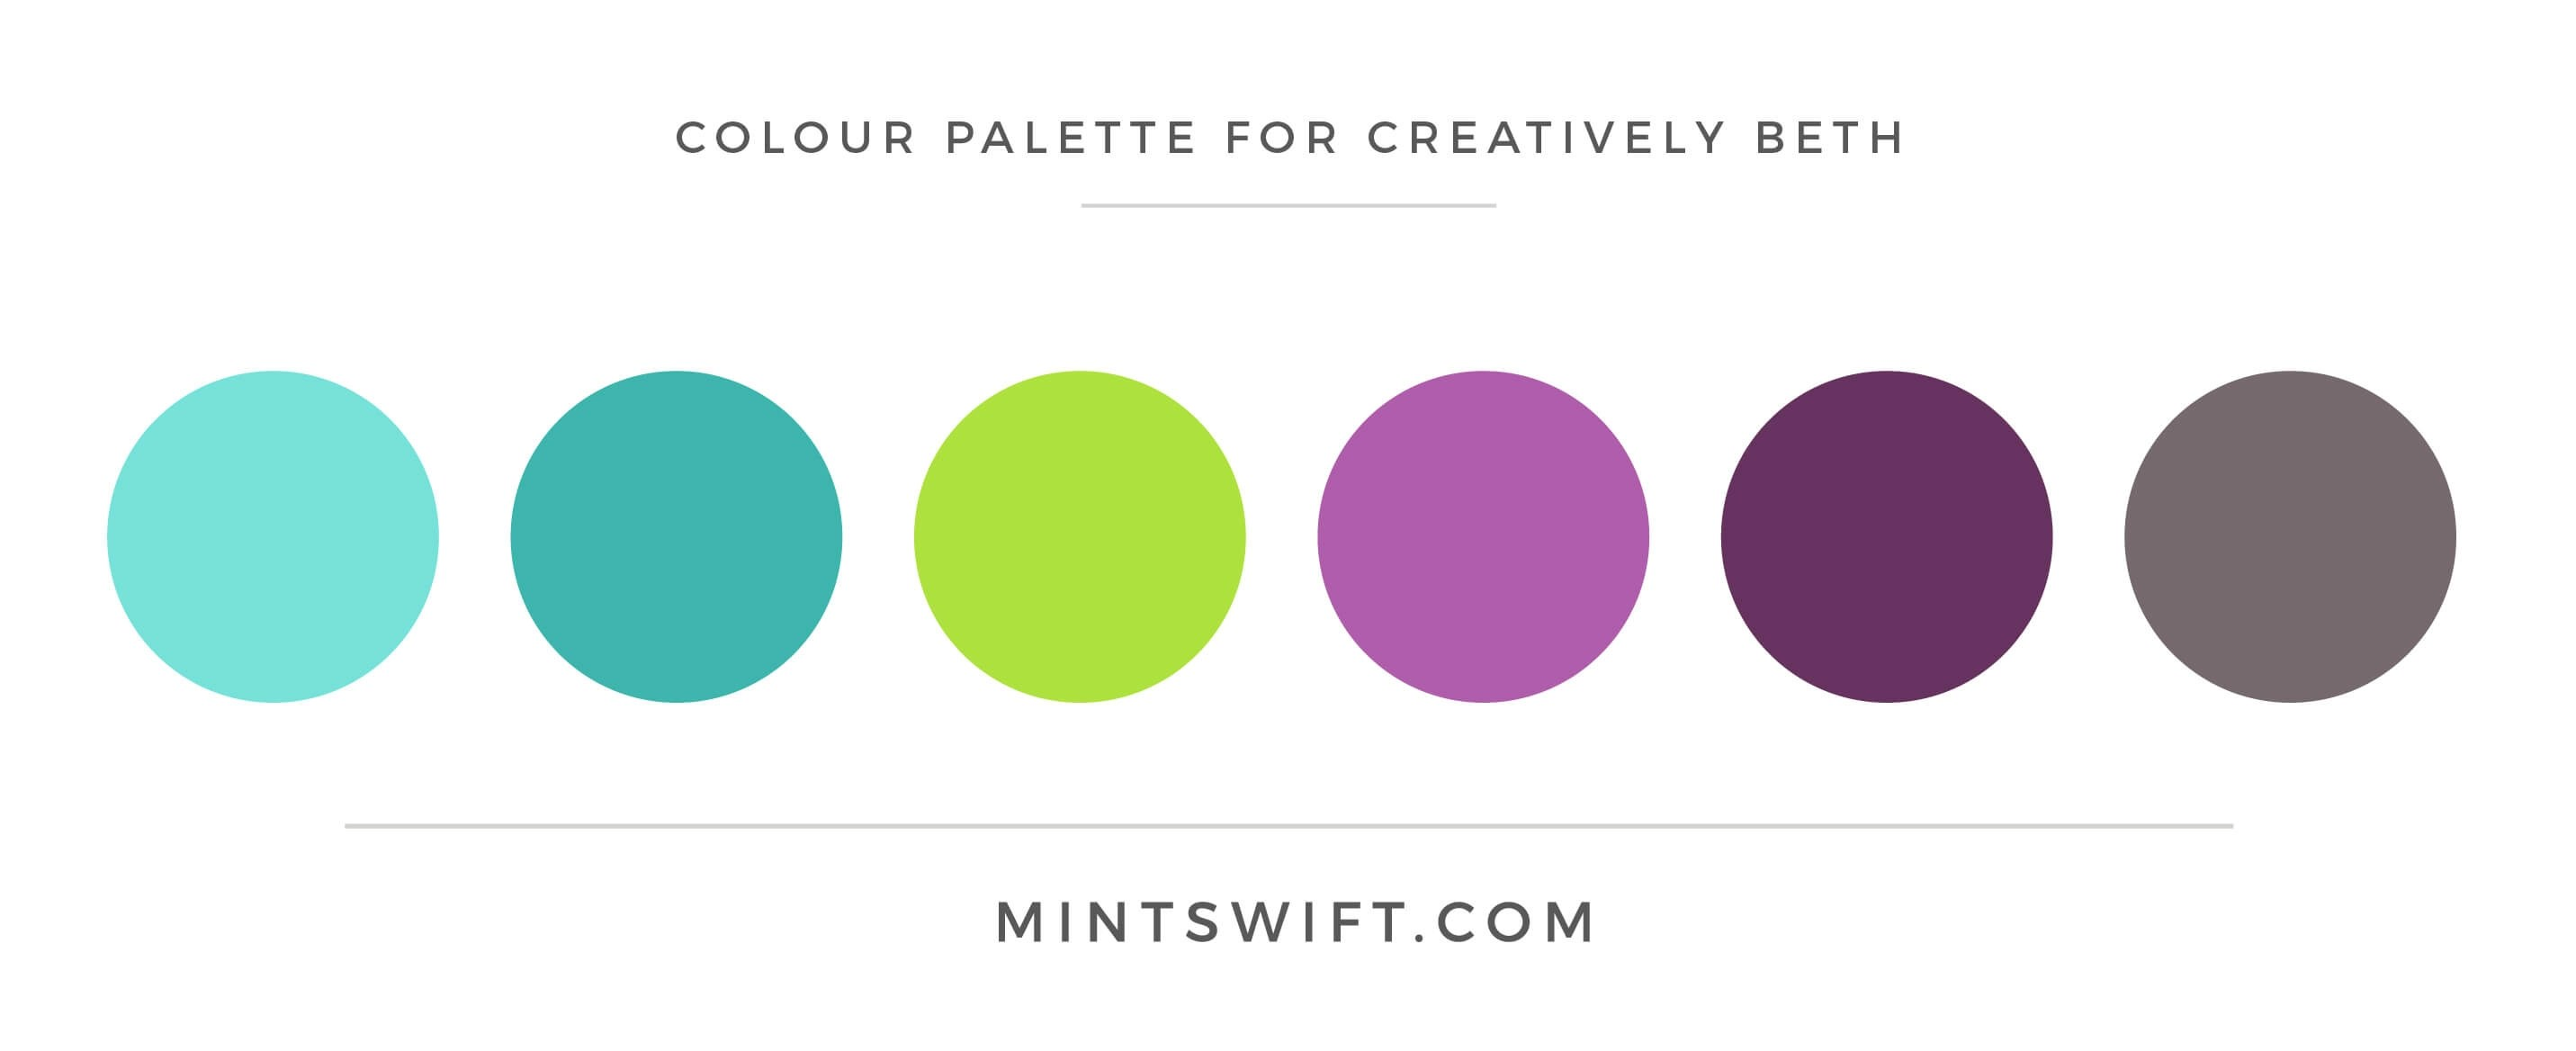 Creatively Beth - Colour Palette - Brand & Website Design - MintSwift